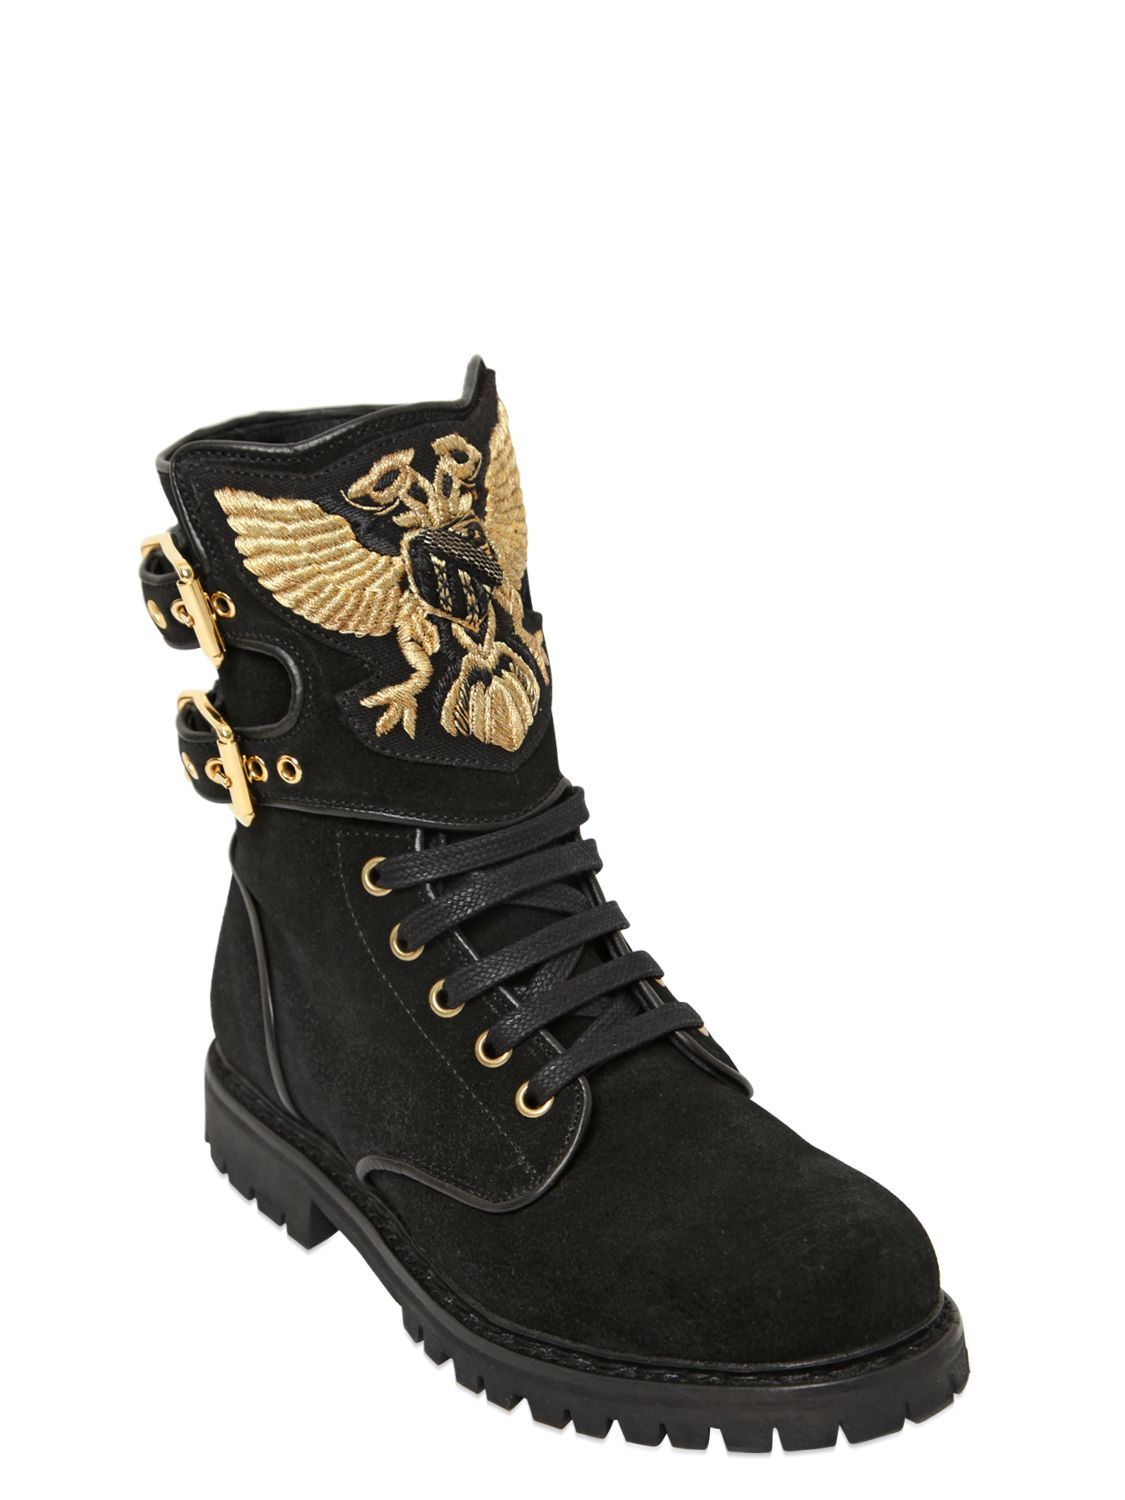 03ffce9b32383 Balmain 20mm Eagle Suede Combat Boots in Gold (BLACK/GOLD) | Shoes ...